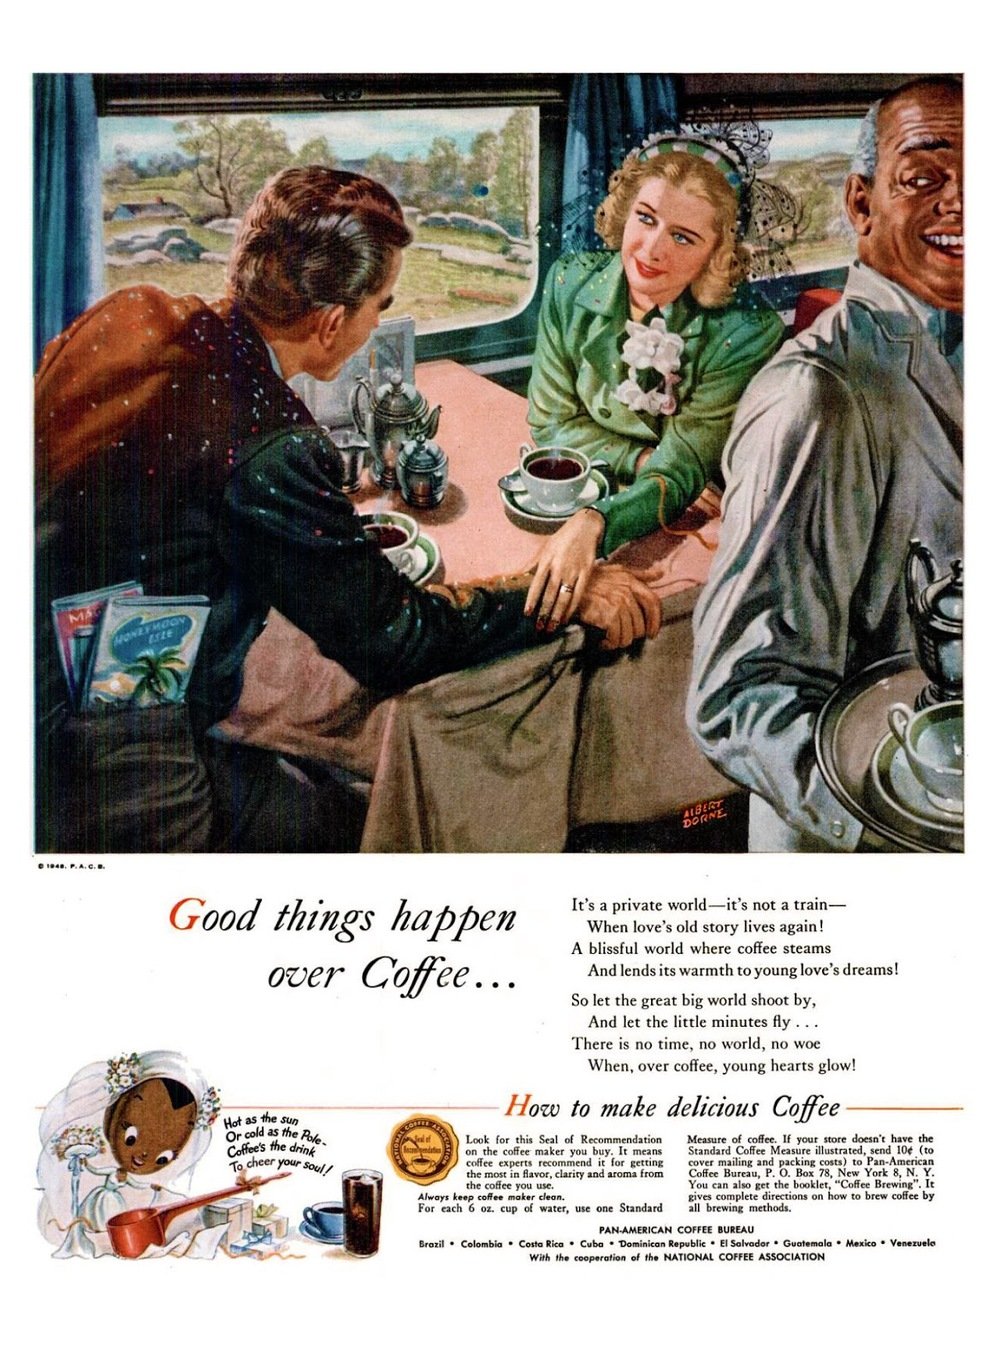 1948-7 Pan-American Coffee Bureau LIFE LIFE Jun 7, 1948 ~ Albert Dorne.jpeg